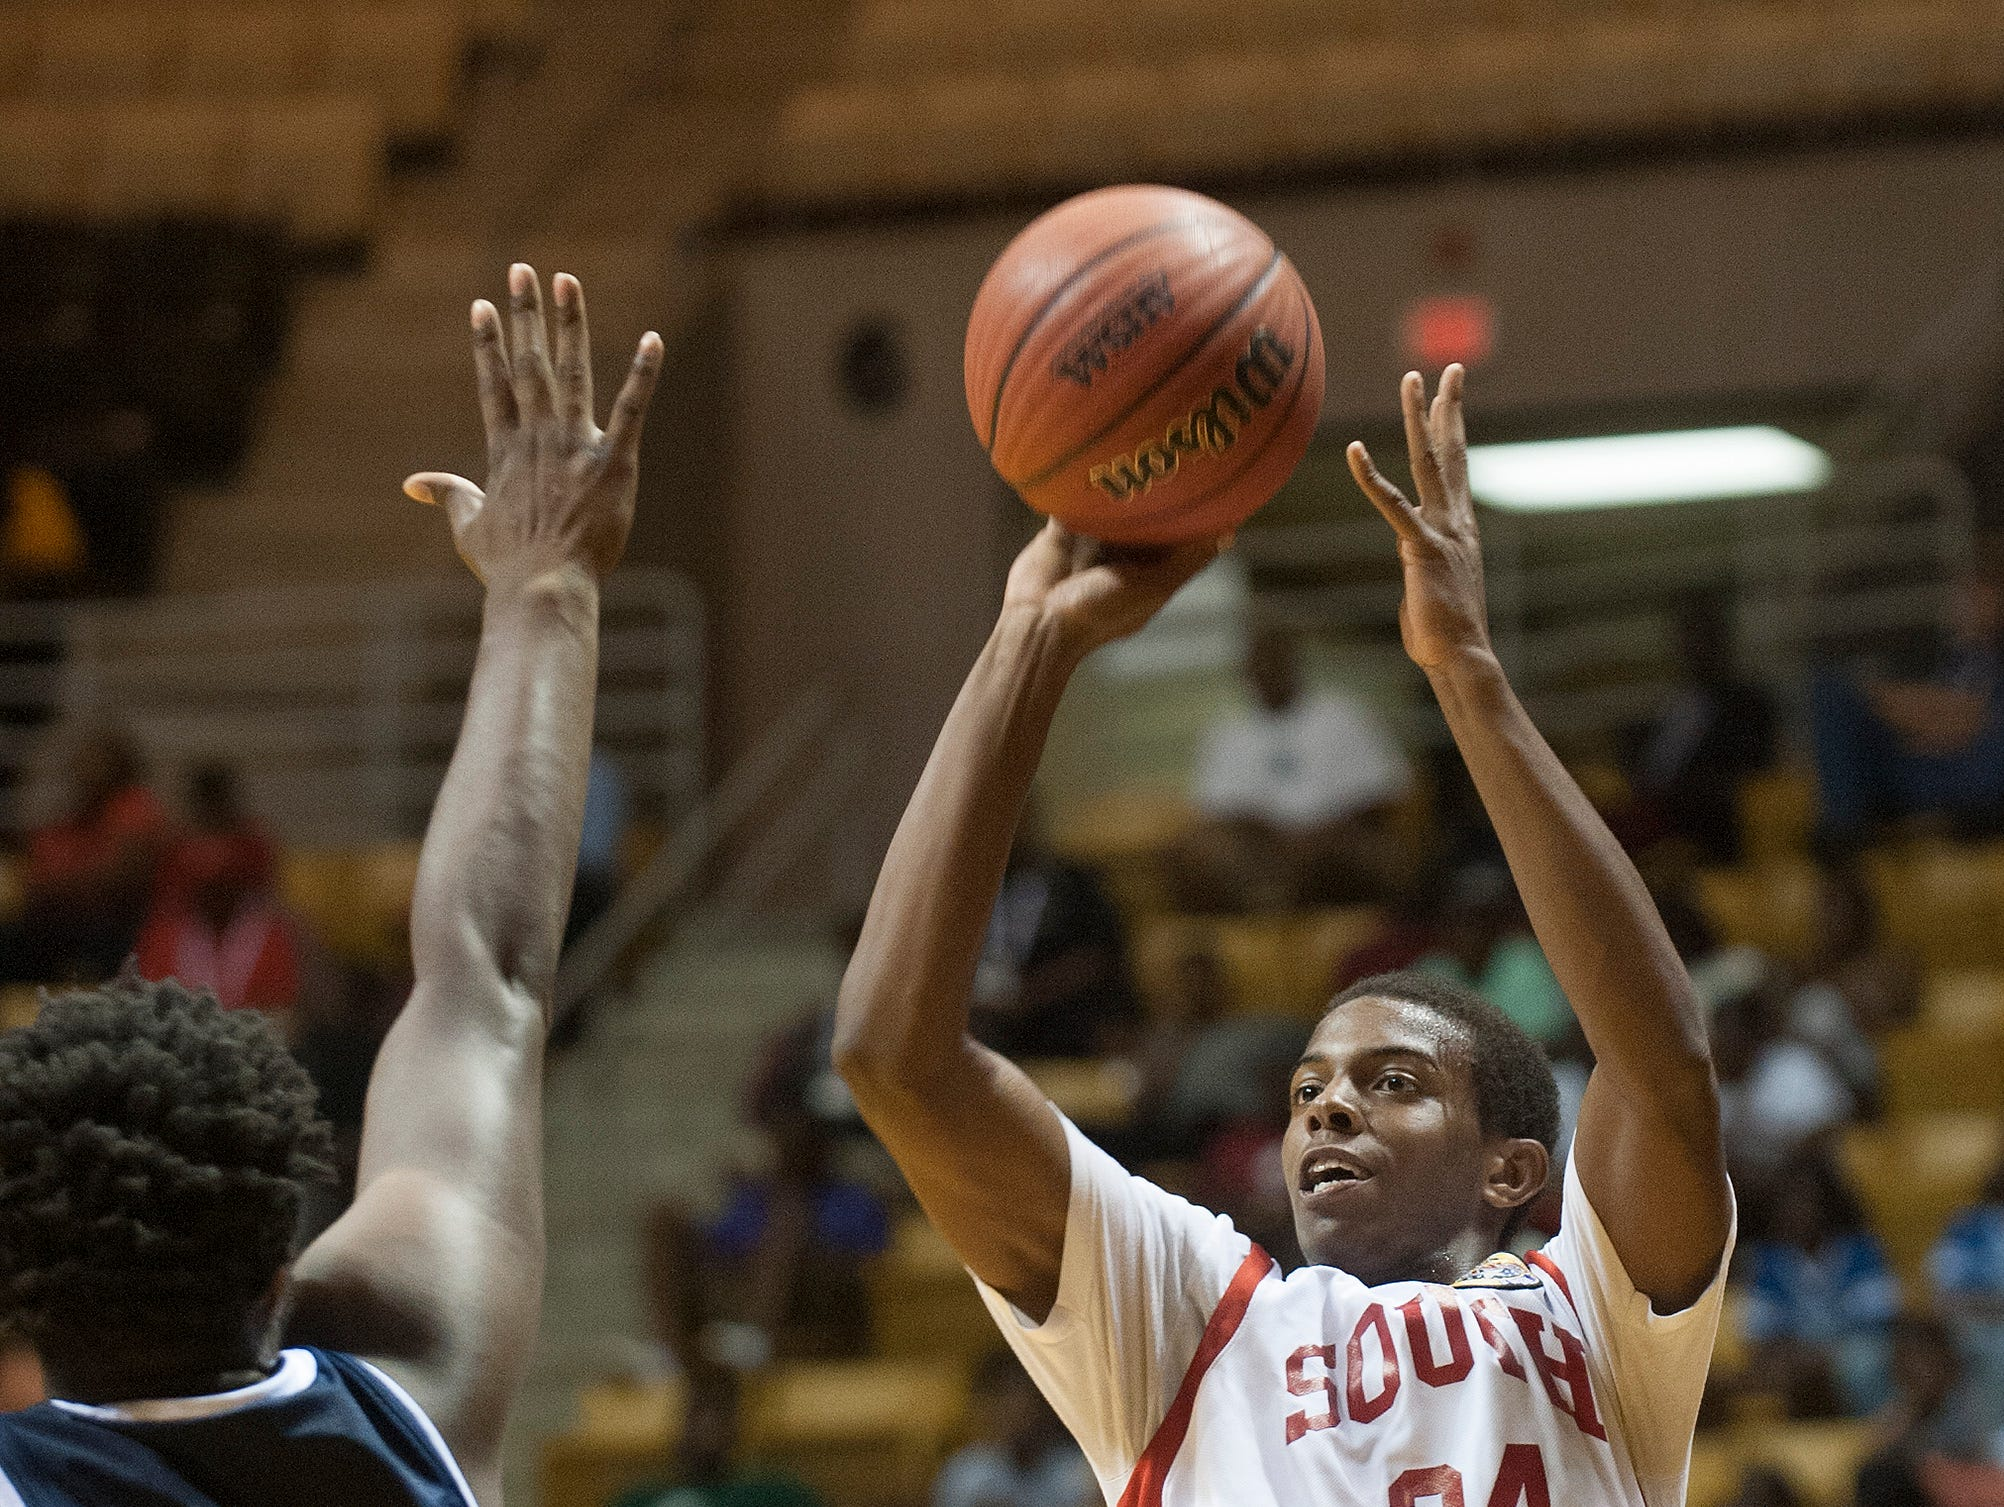 Austin Rogers (34) puts up a three pointer during the AHSAA All-Star basketball game at the Alabama State University Acadome in Montgomery, Ala., on Wednesday May 22, 2015.